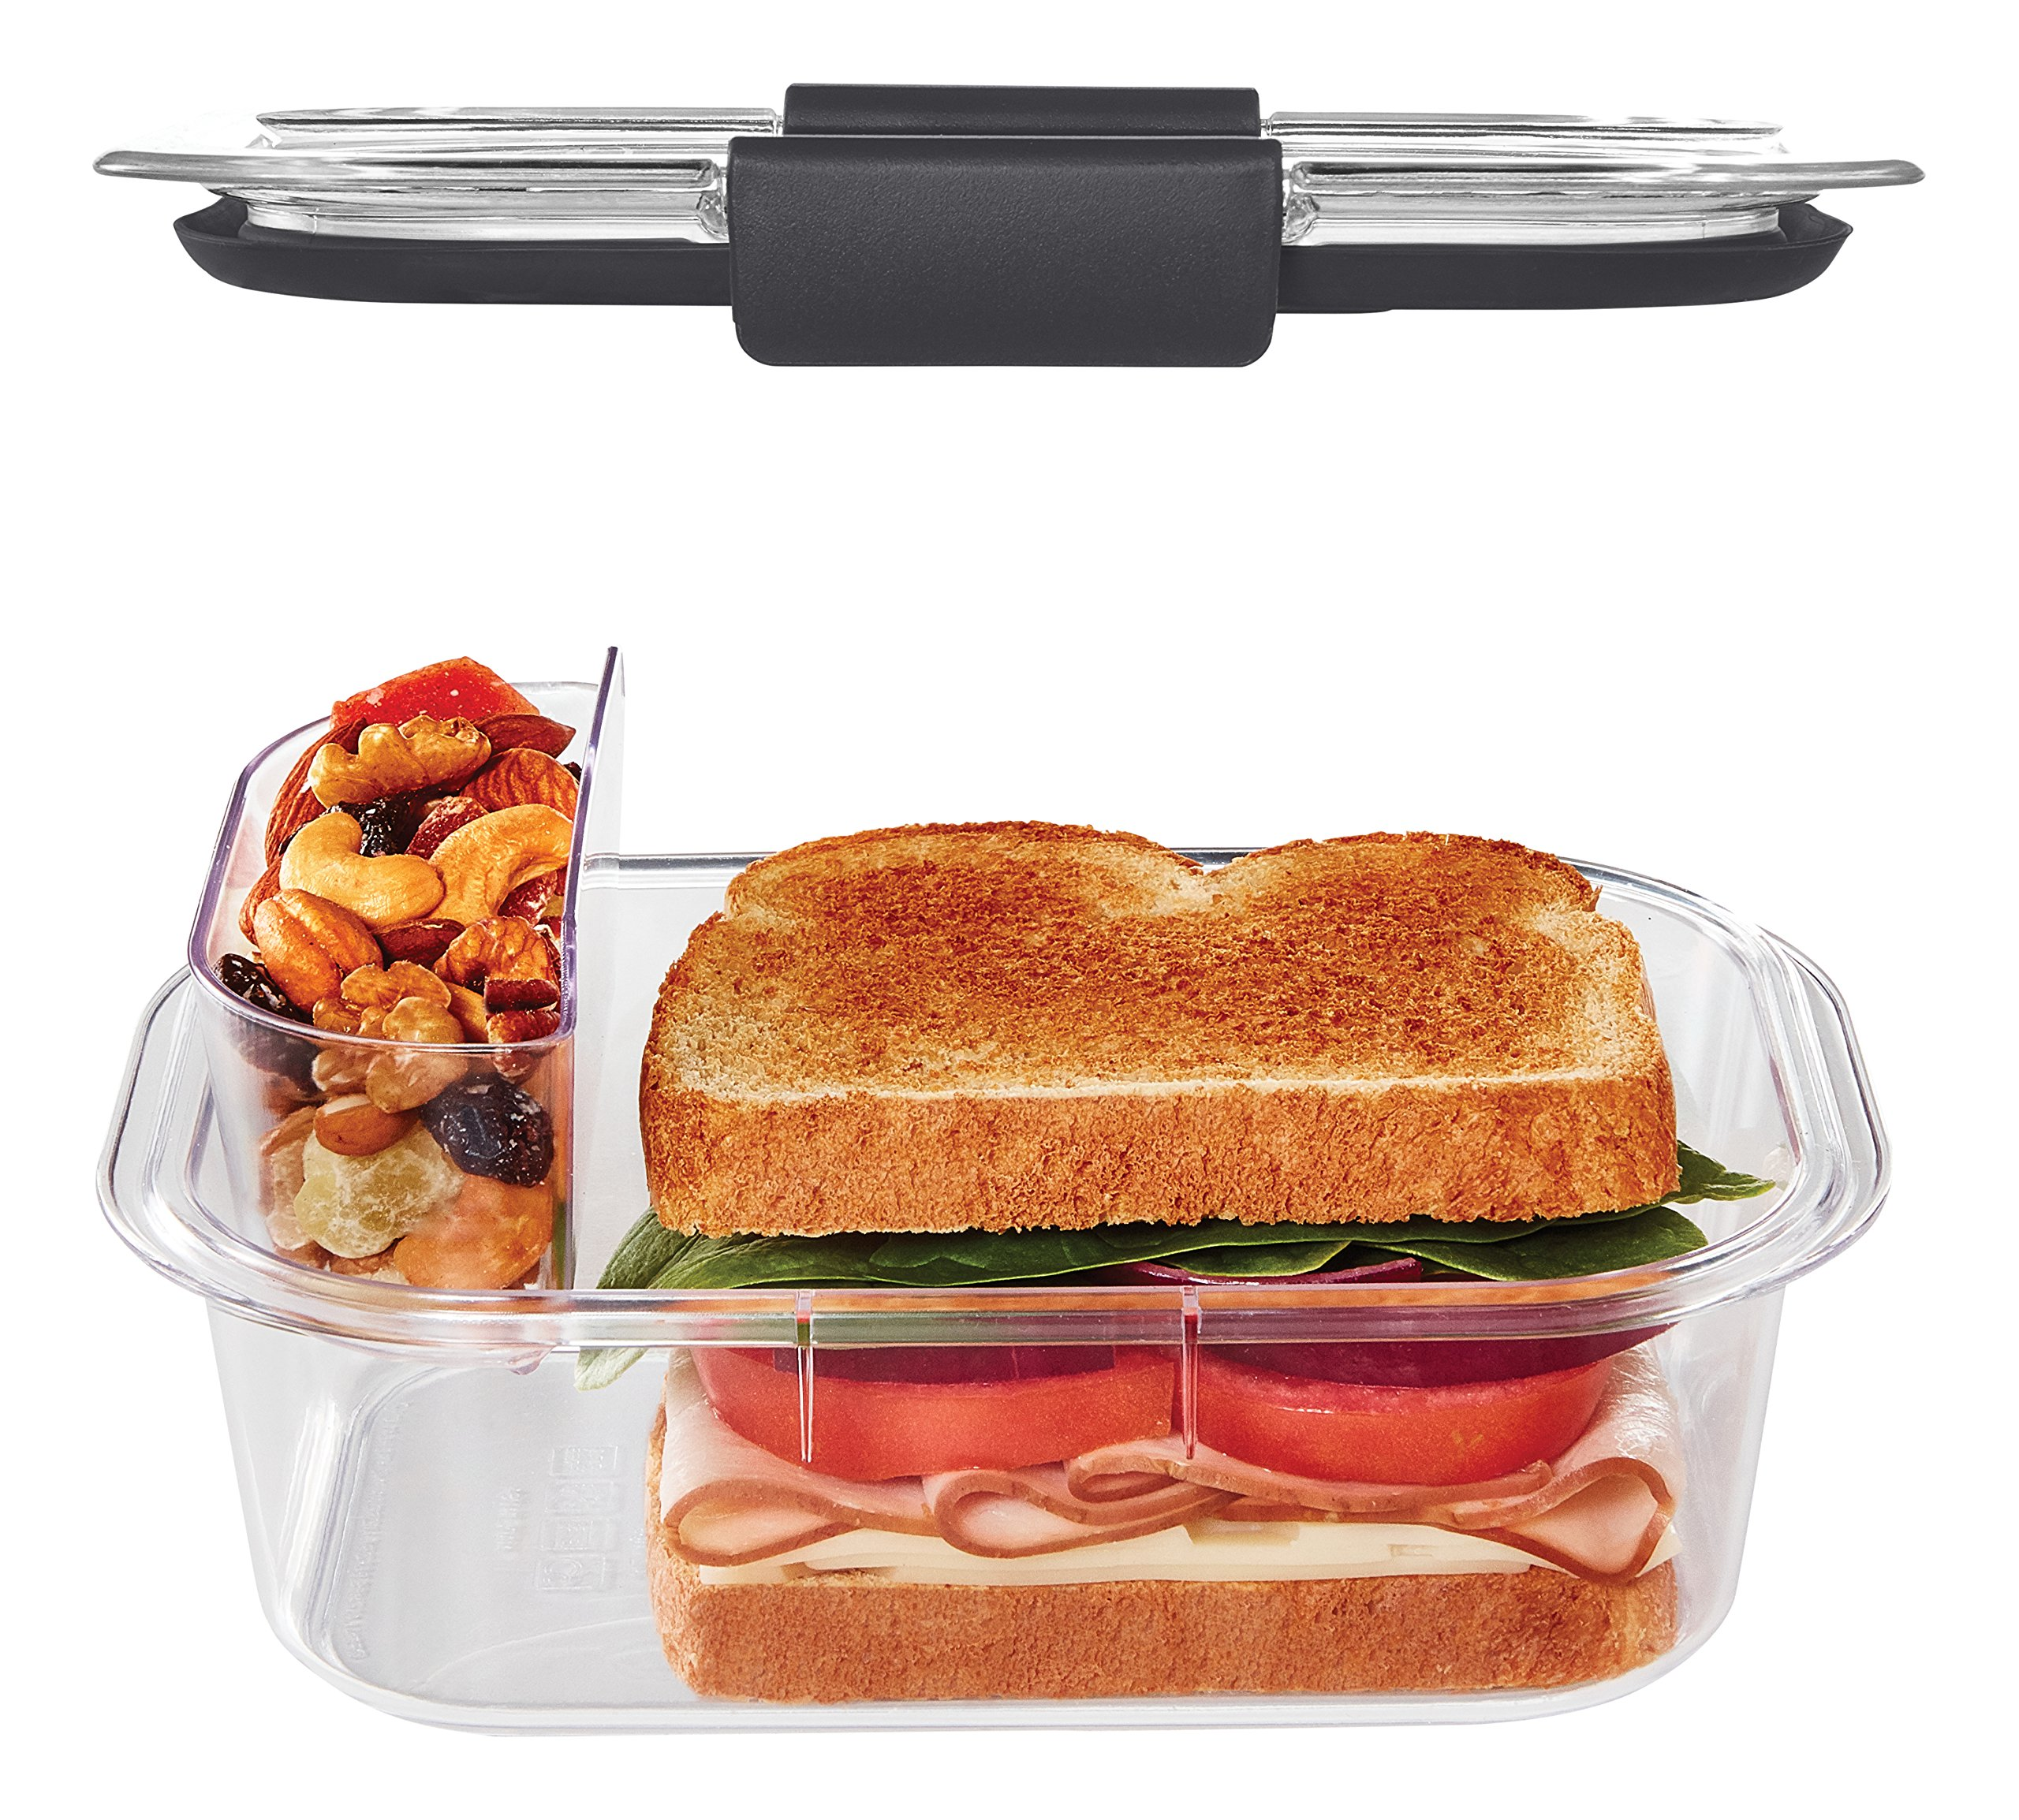 Rubbermaid Brilliance Food Storage Container, Sandwich and Snack Lunch Kit, Clear, 10-Piece Set 1997842 by Rubbermaid (Image #3)